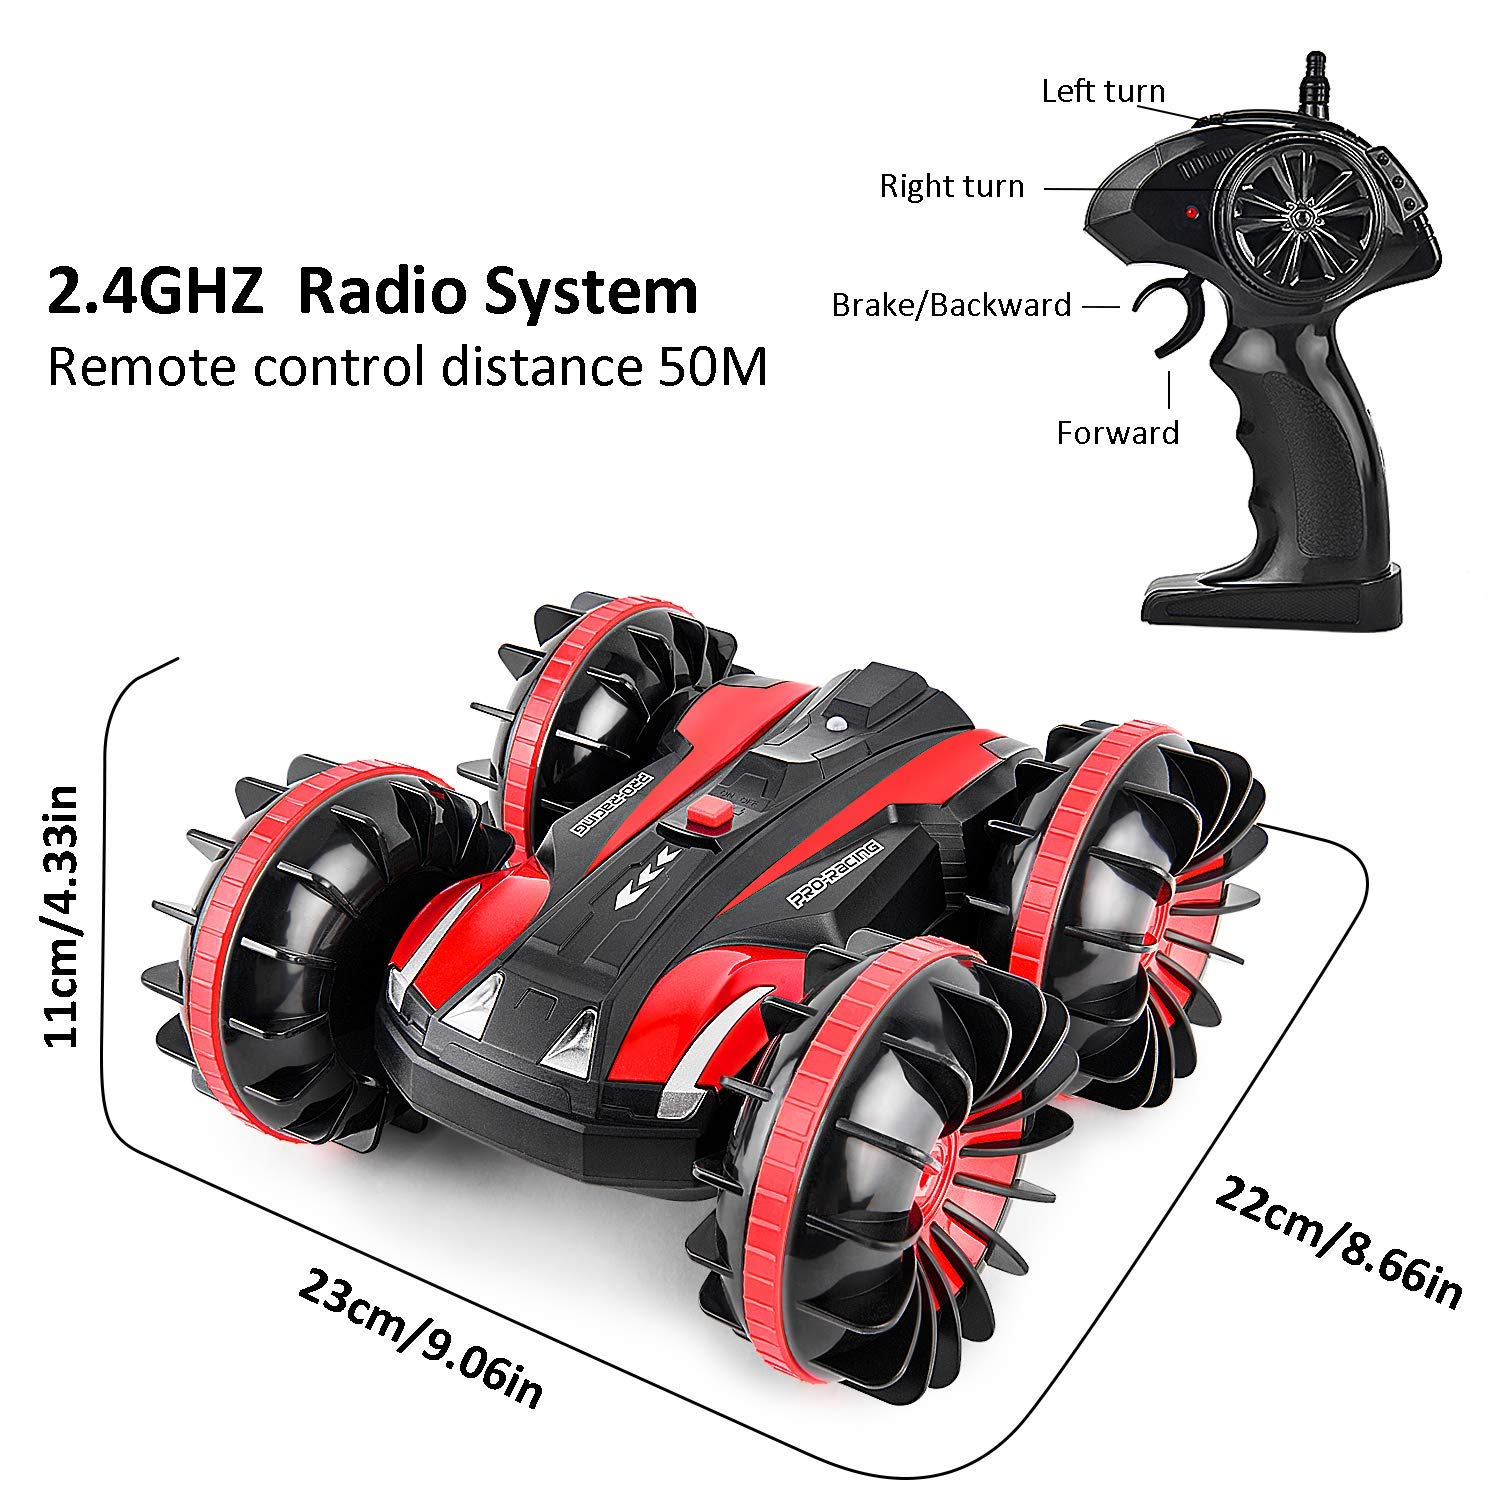 Waterproof RC Cars for Kids Remote Control Car Boat RC Truck Amphibious Stunt Car 4WD Off Road 2.4GHz Radio Controlled Vehicle 360 Degree Rotates Toys for 7-16 Year Old Boys Girls Birthday Gift Red by ROOYA BABY (Image #5)